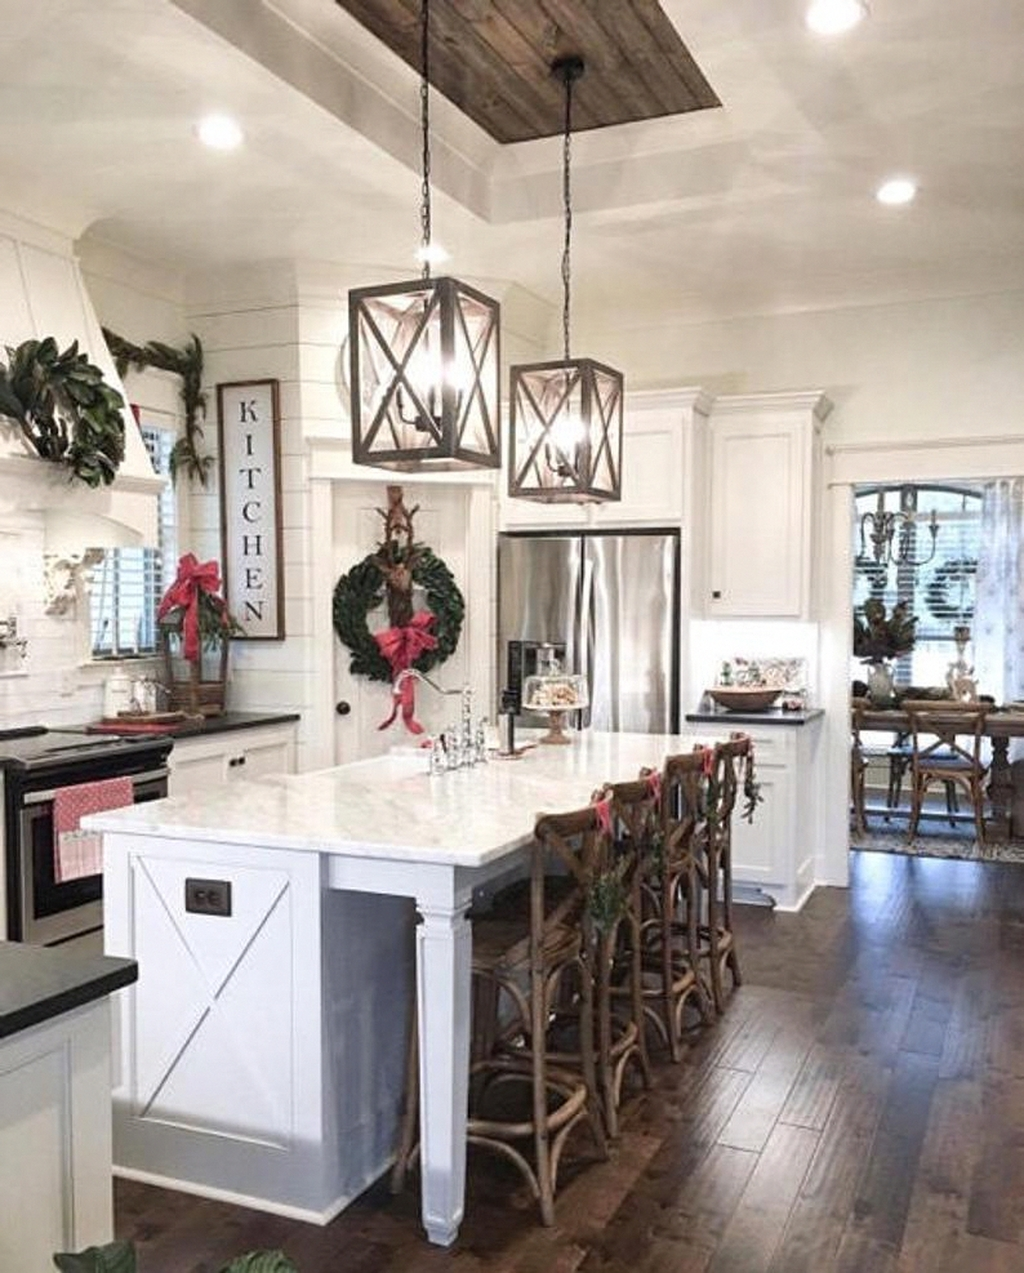 20+ Rustic Farmhouse Kitchen Ideas To Get Traditional ... on Rustic:yucvisfte_S= Farmhouse Kitchen Ideas  id=48068